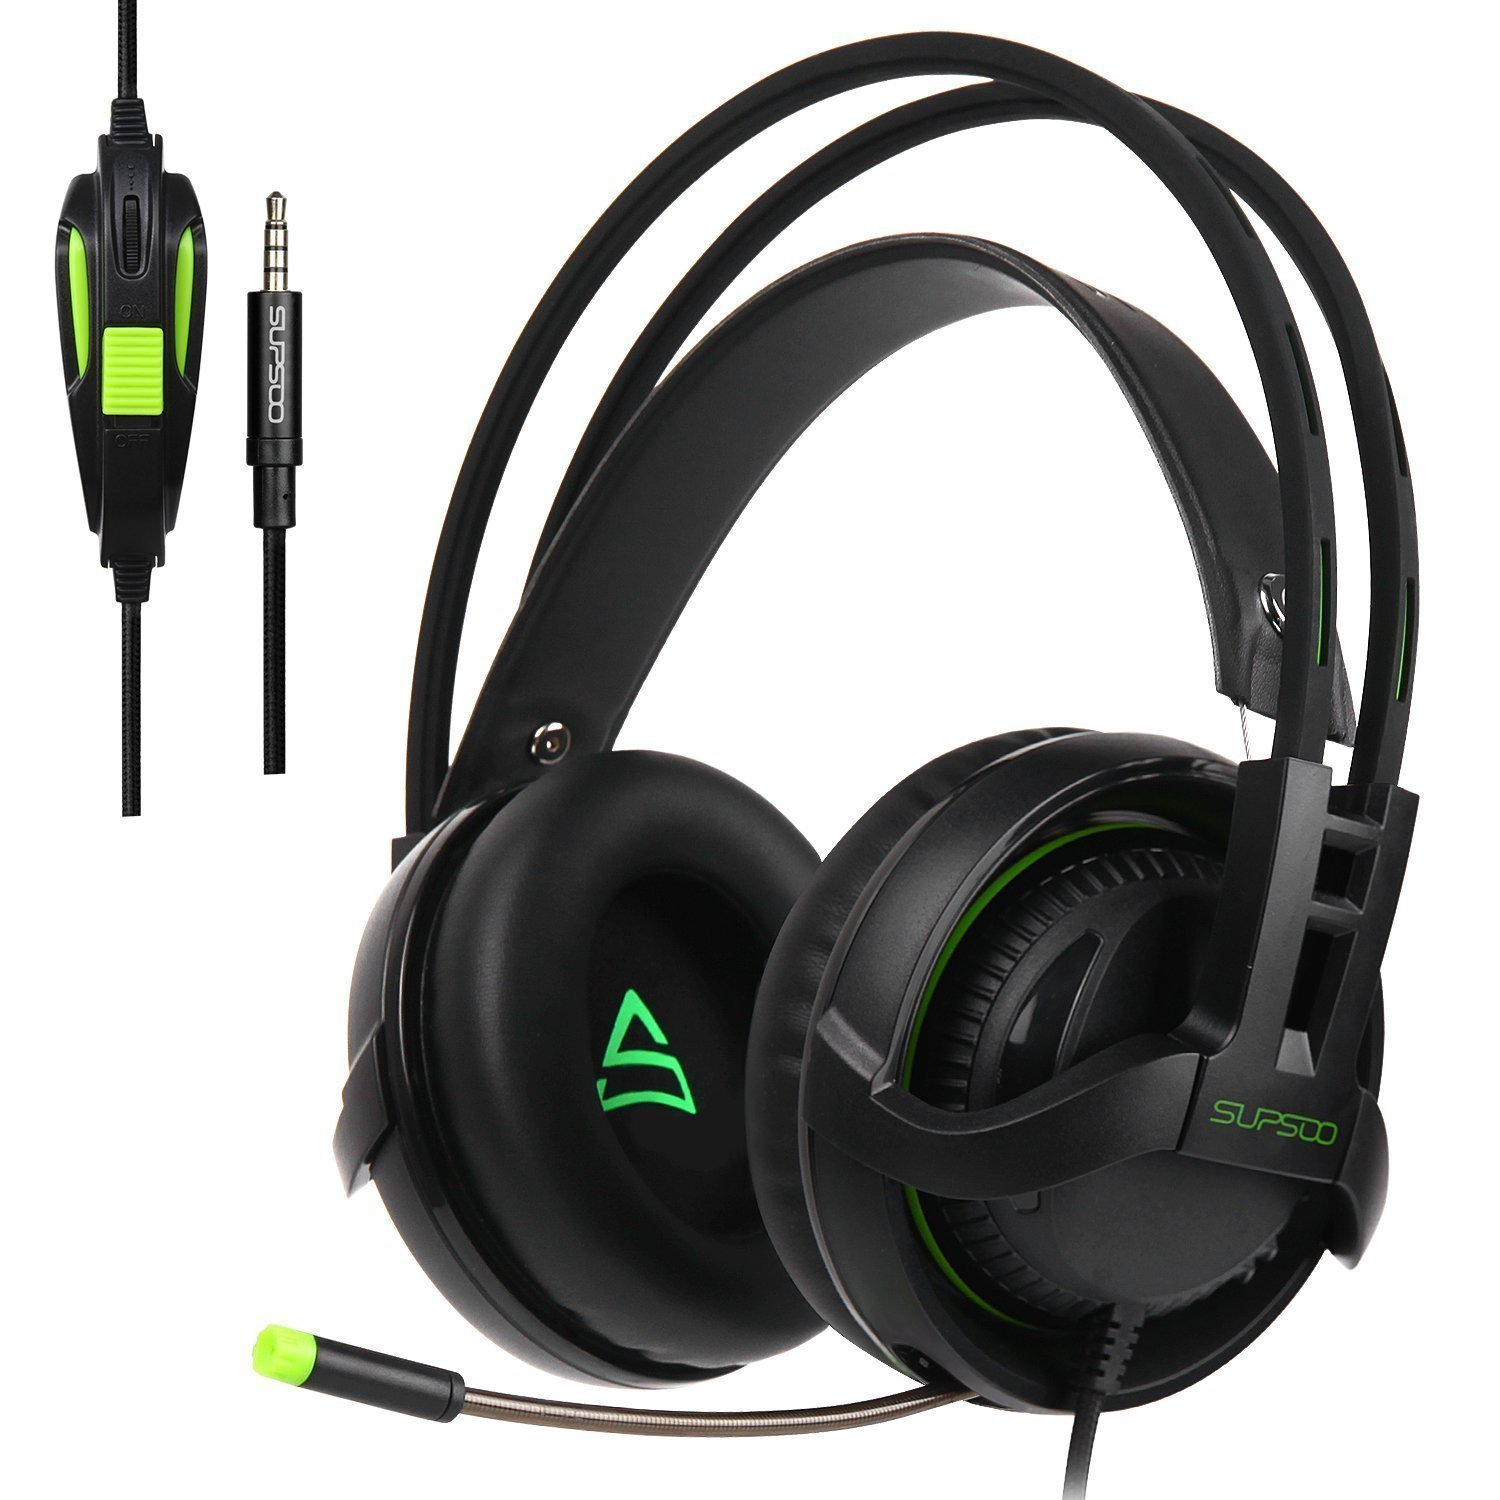 [2017 Newly Updated ] Supsoo SU810 Multi-Platform Gaming Headset With Mic 3.5MM Jack IN-LINE Volume Control Over-ear Gaming Headphones For New Xbox One/PC/Mac/PS4/Smartphones(black) …